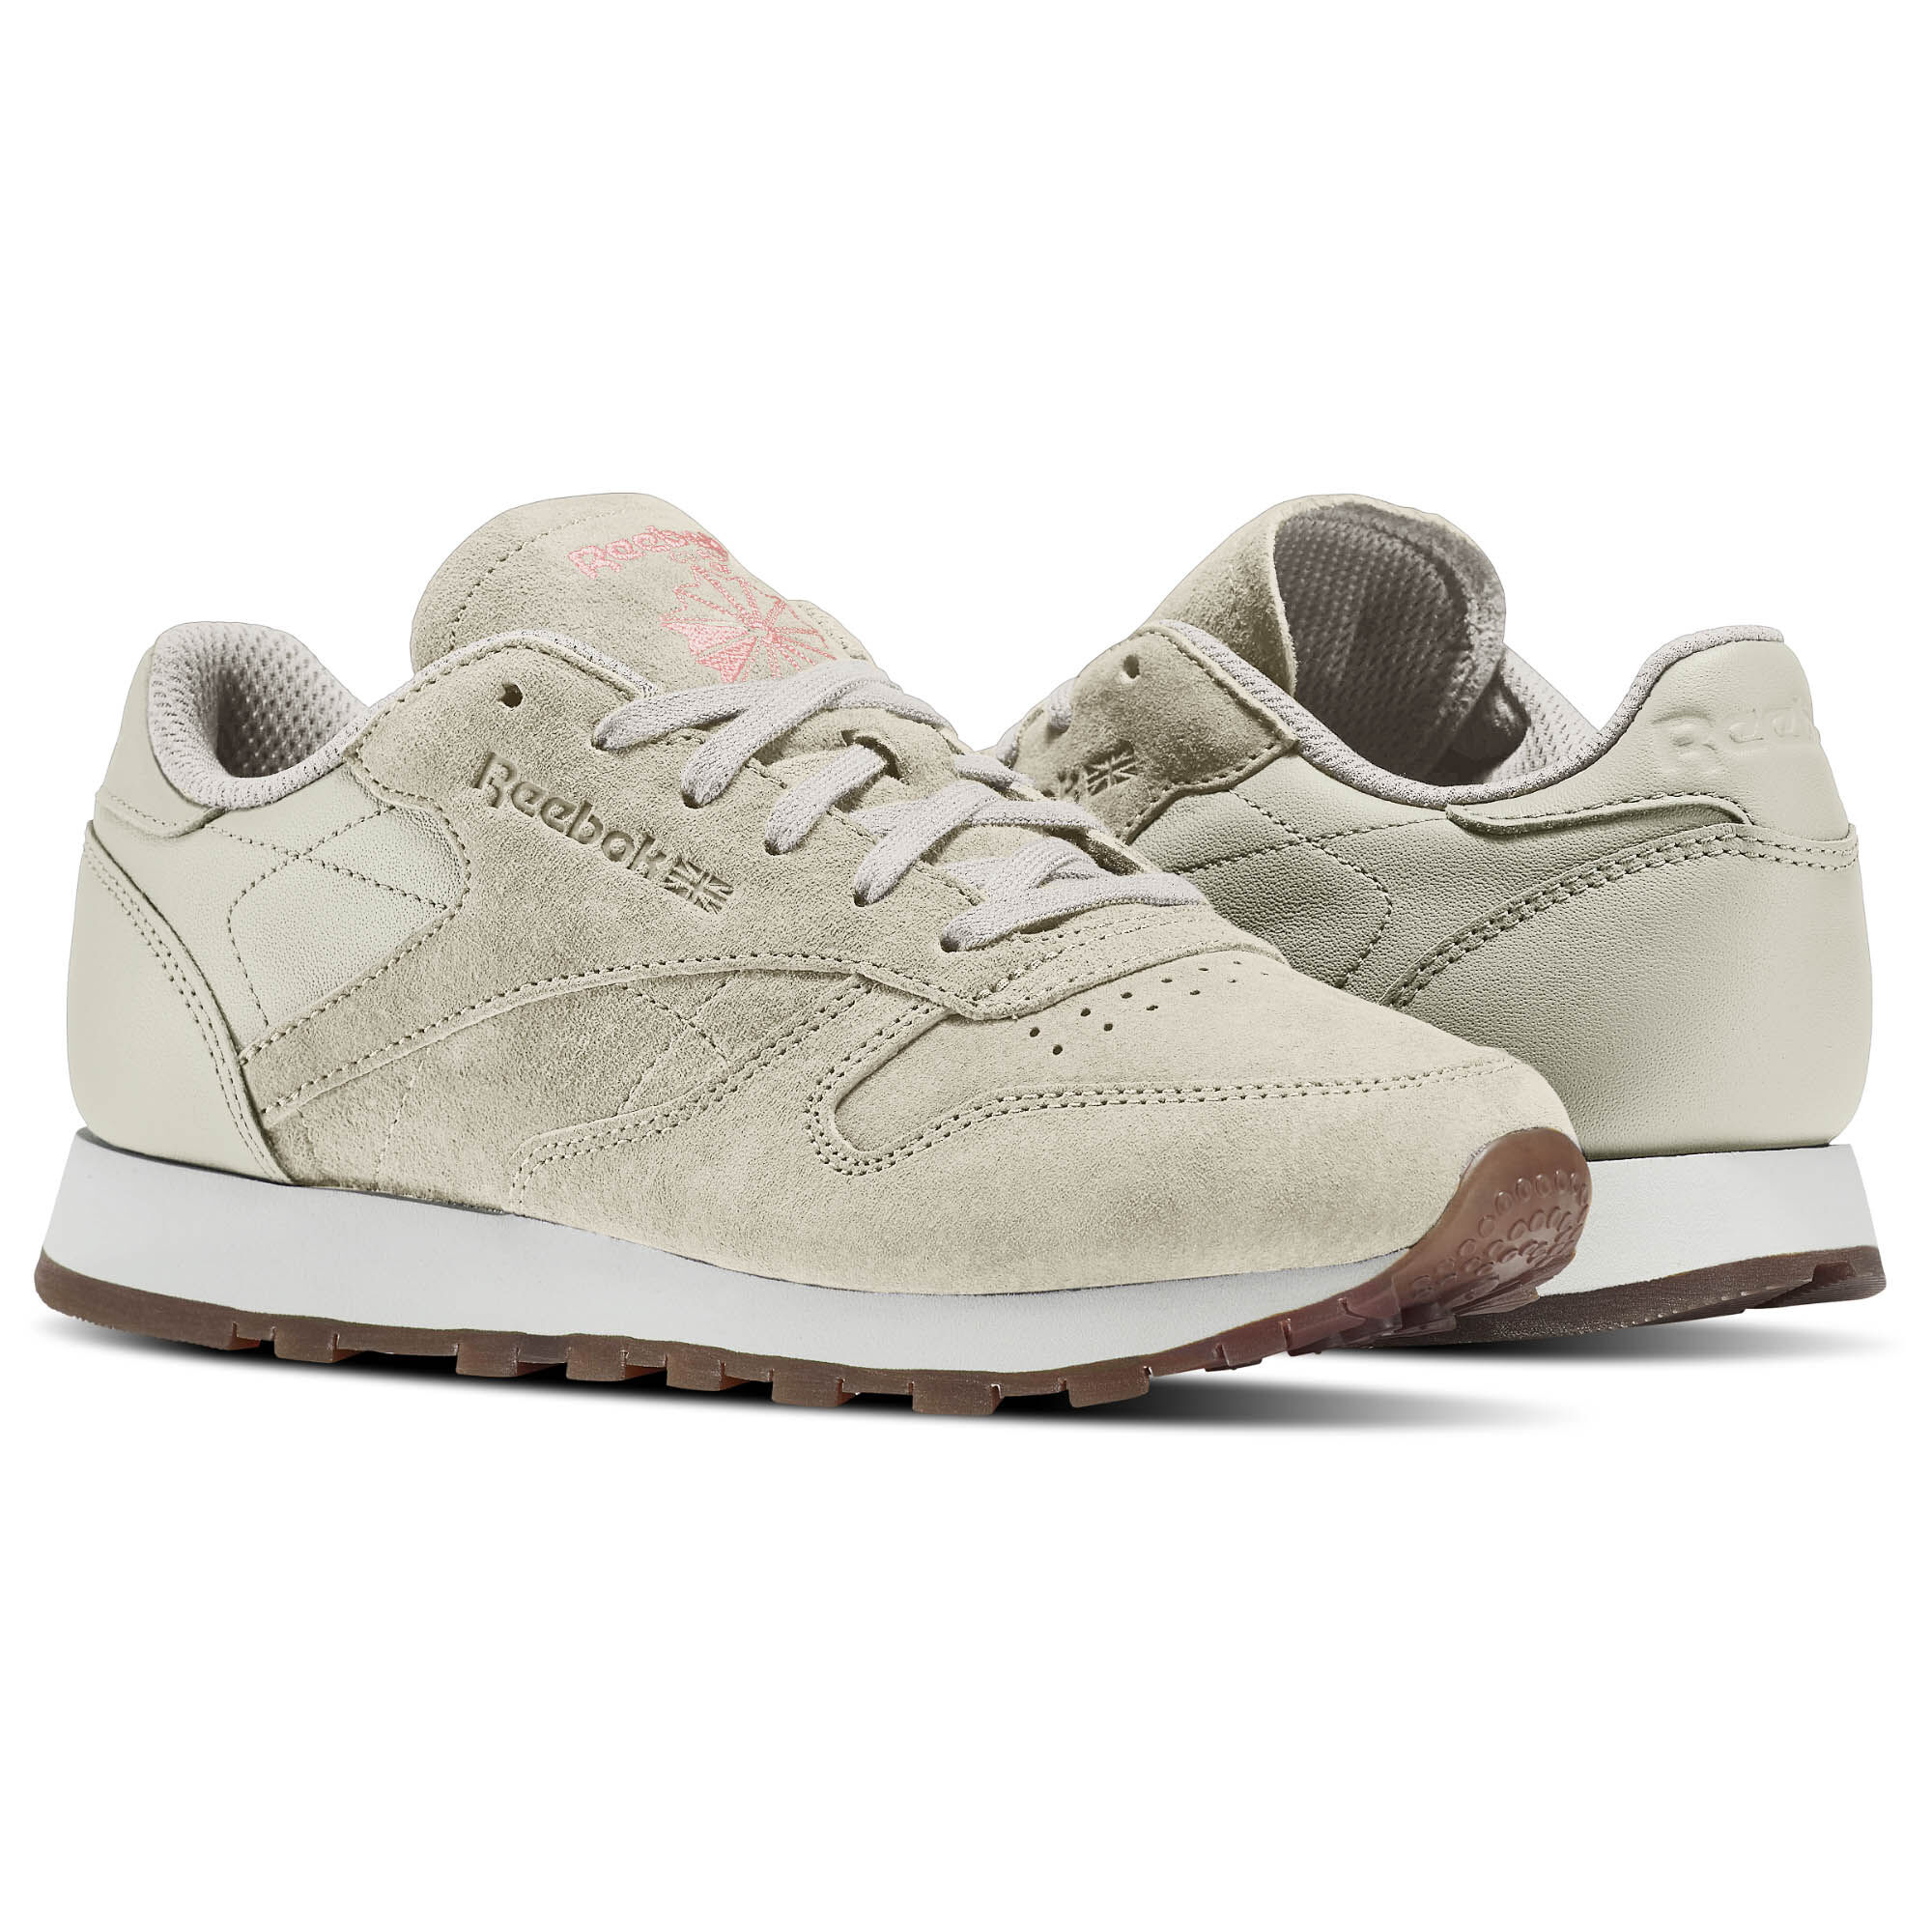 Reebok - Classic Leather EB Beige/Black/Sand Stone/Chalk/Sour Melon